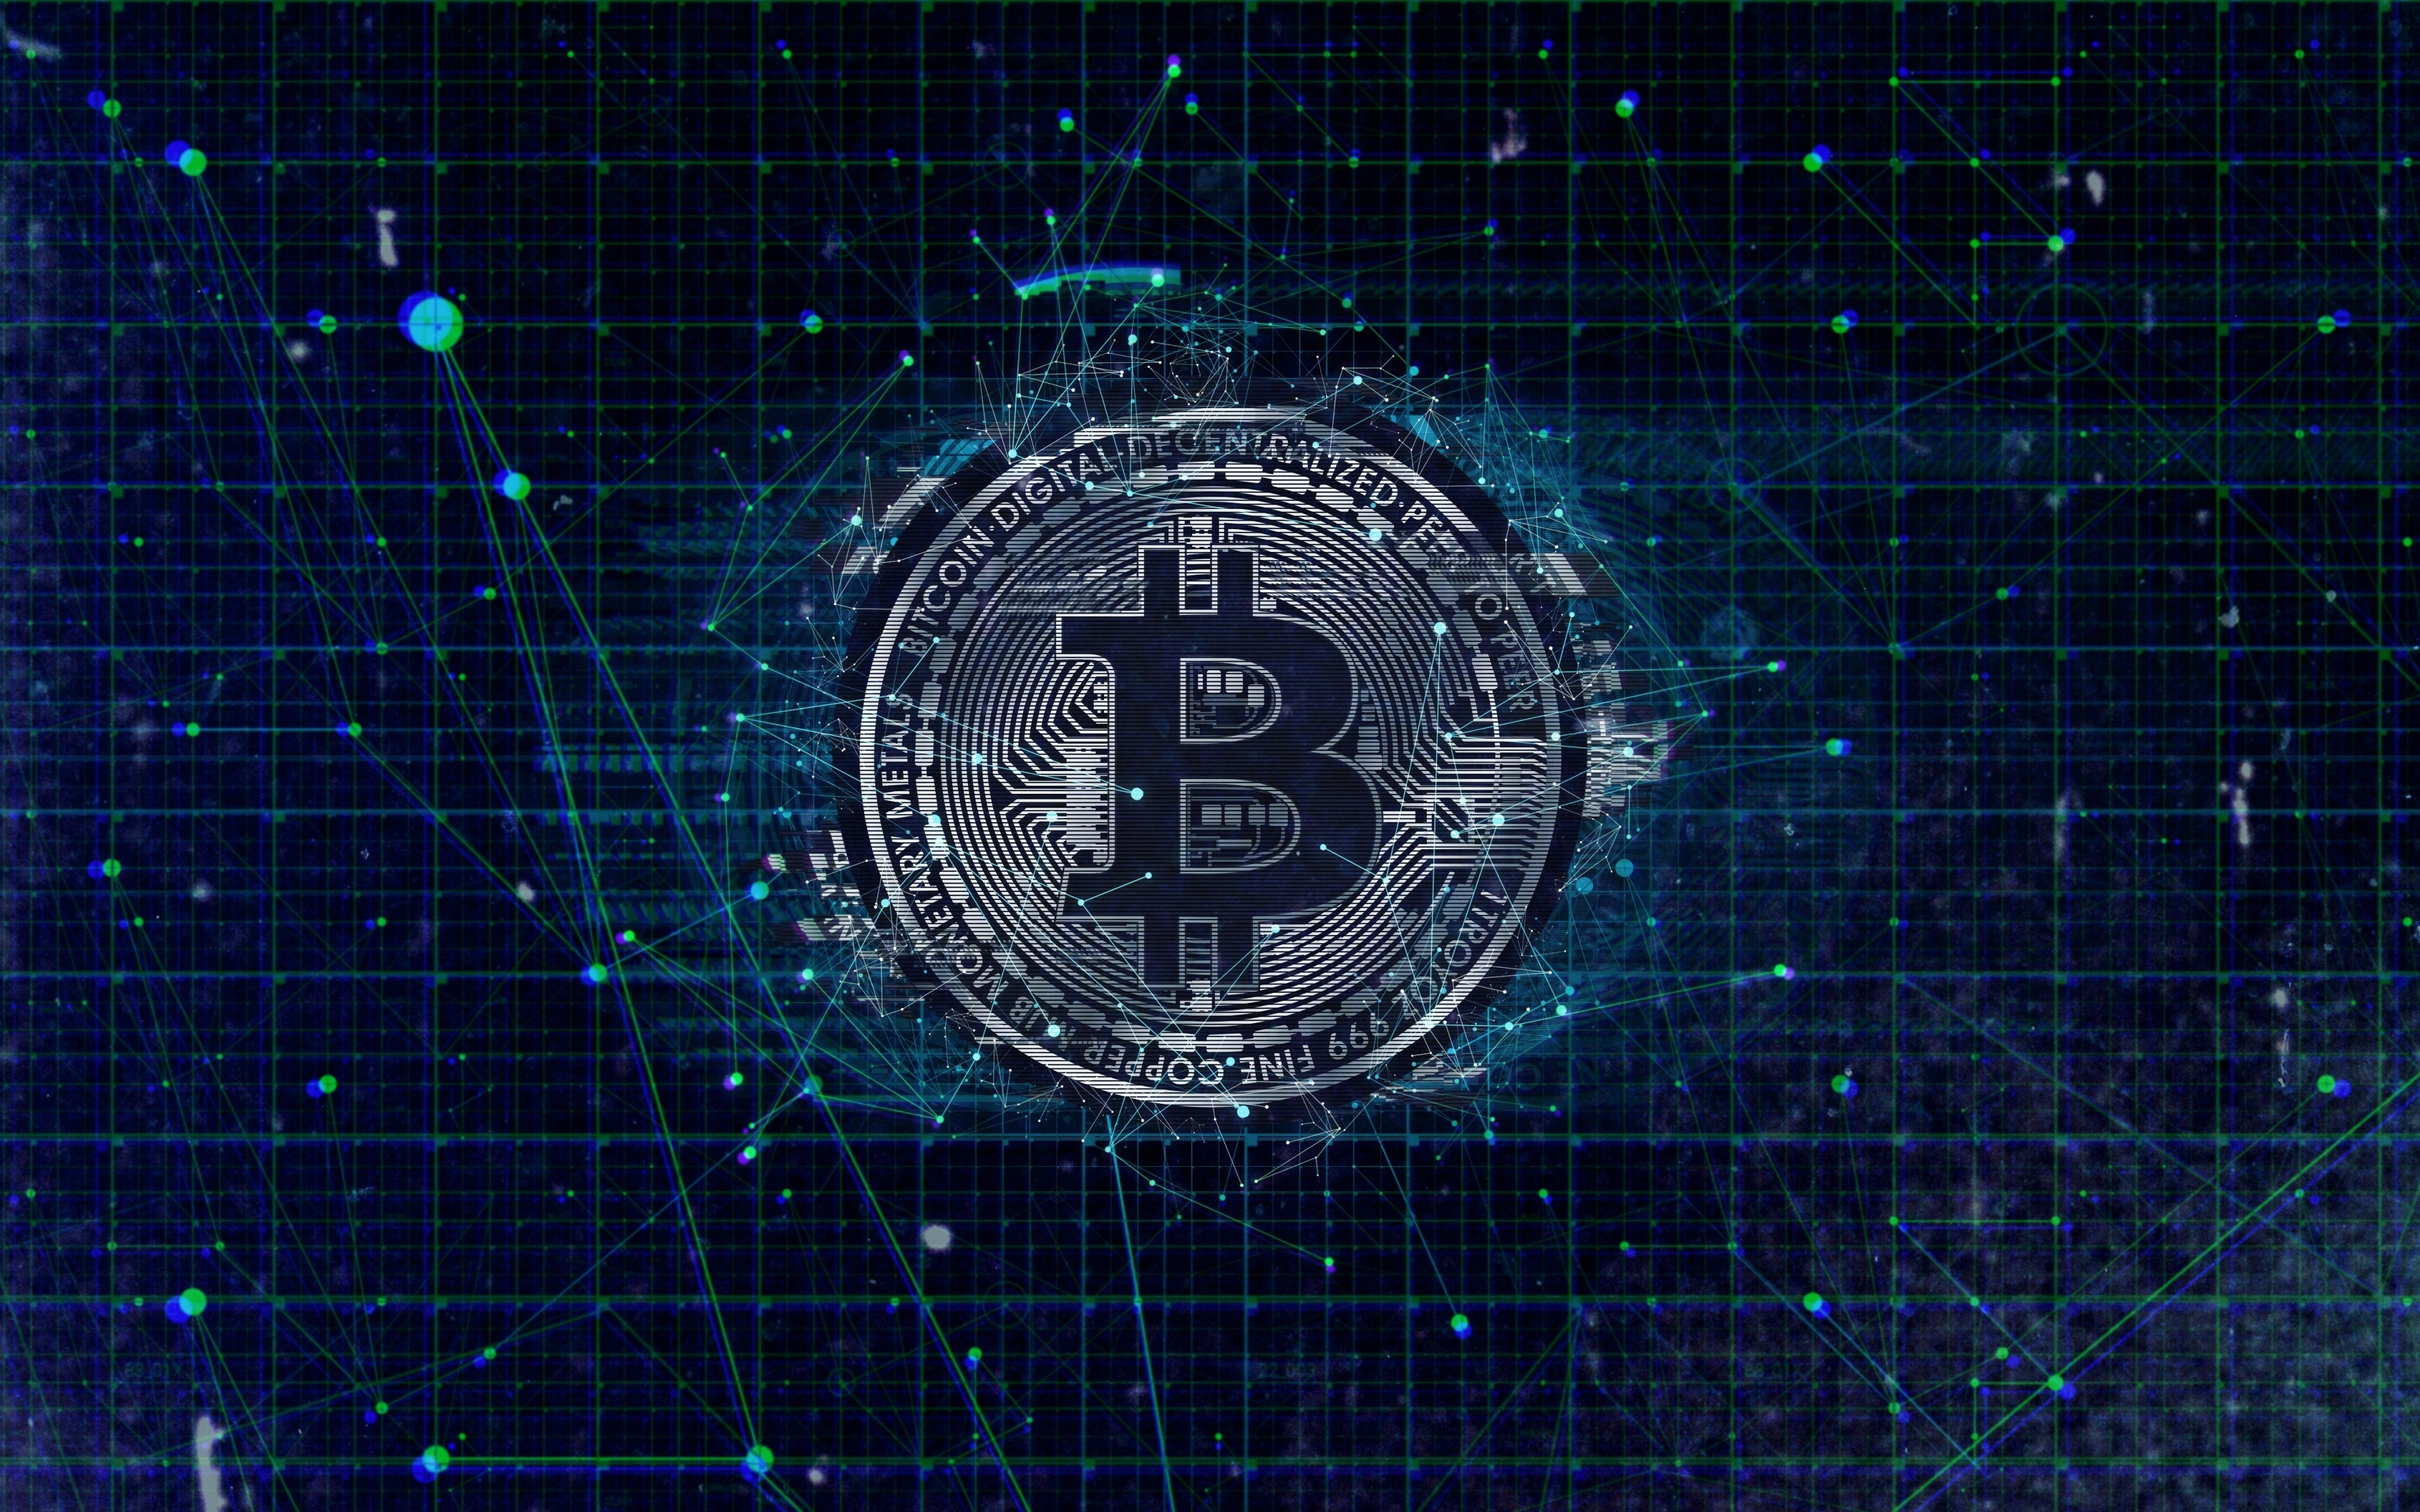 Bitcoin Core introduced a new version